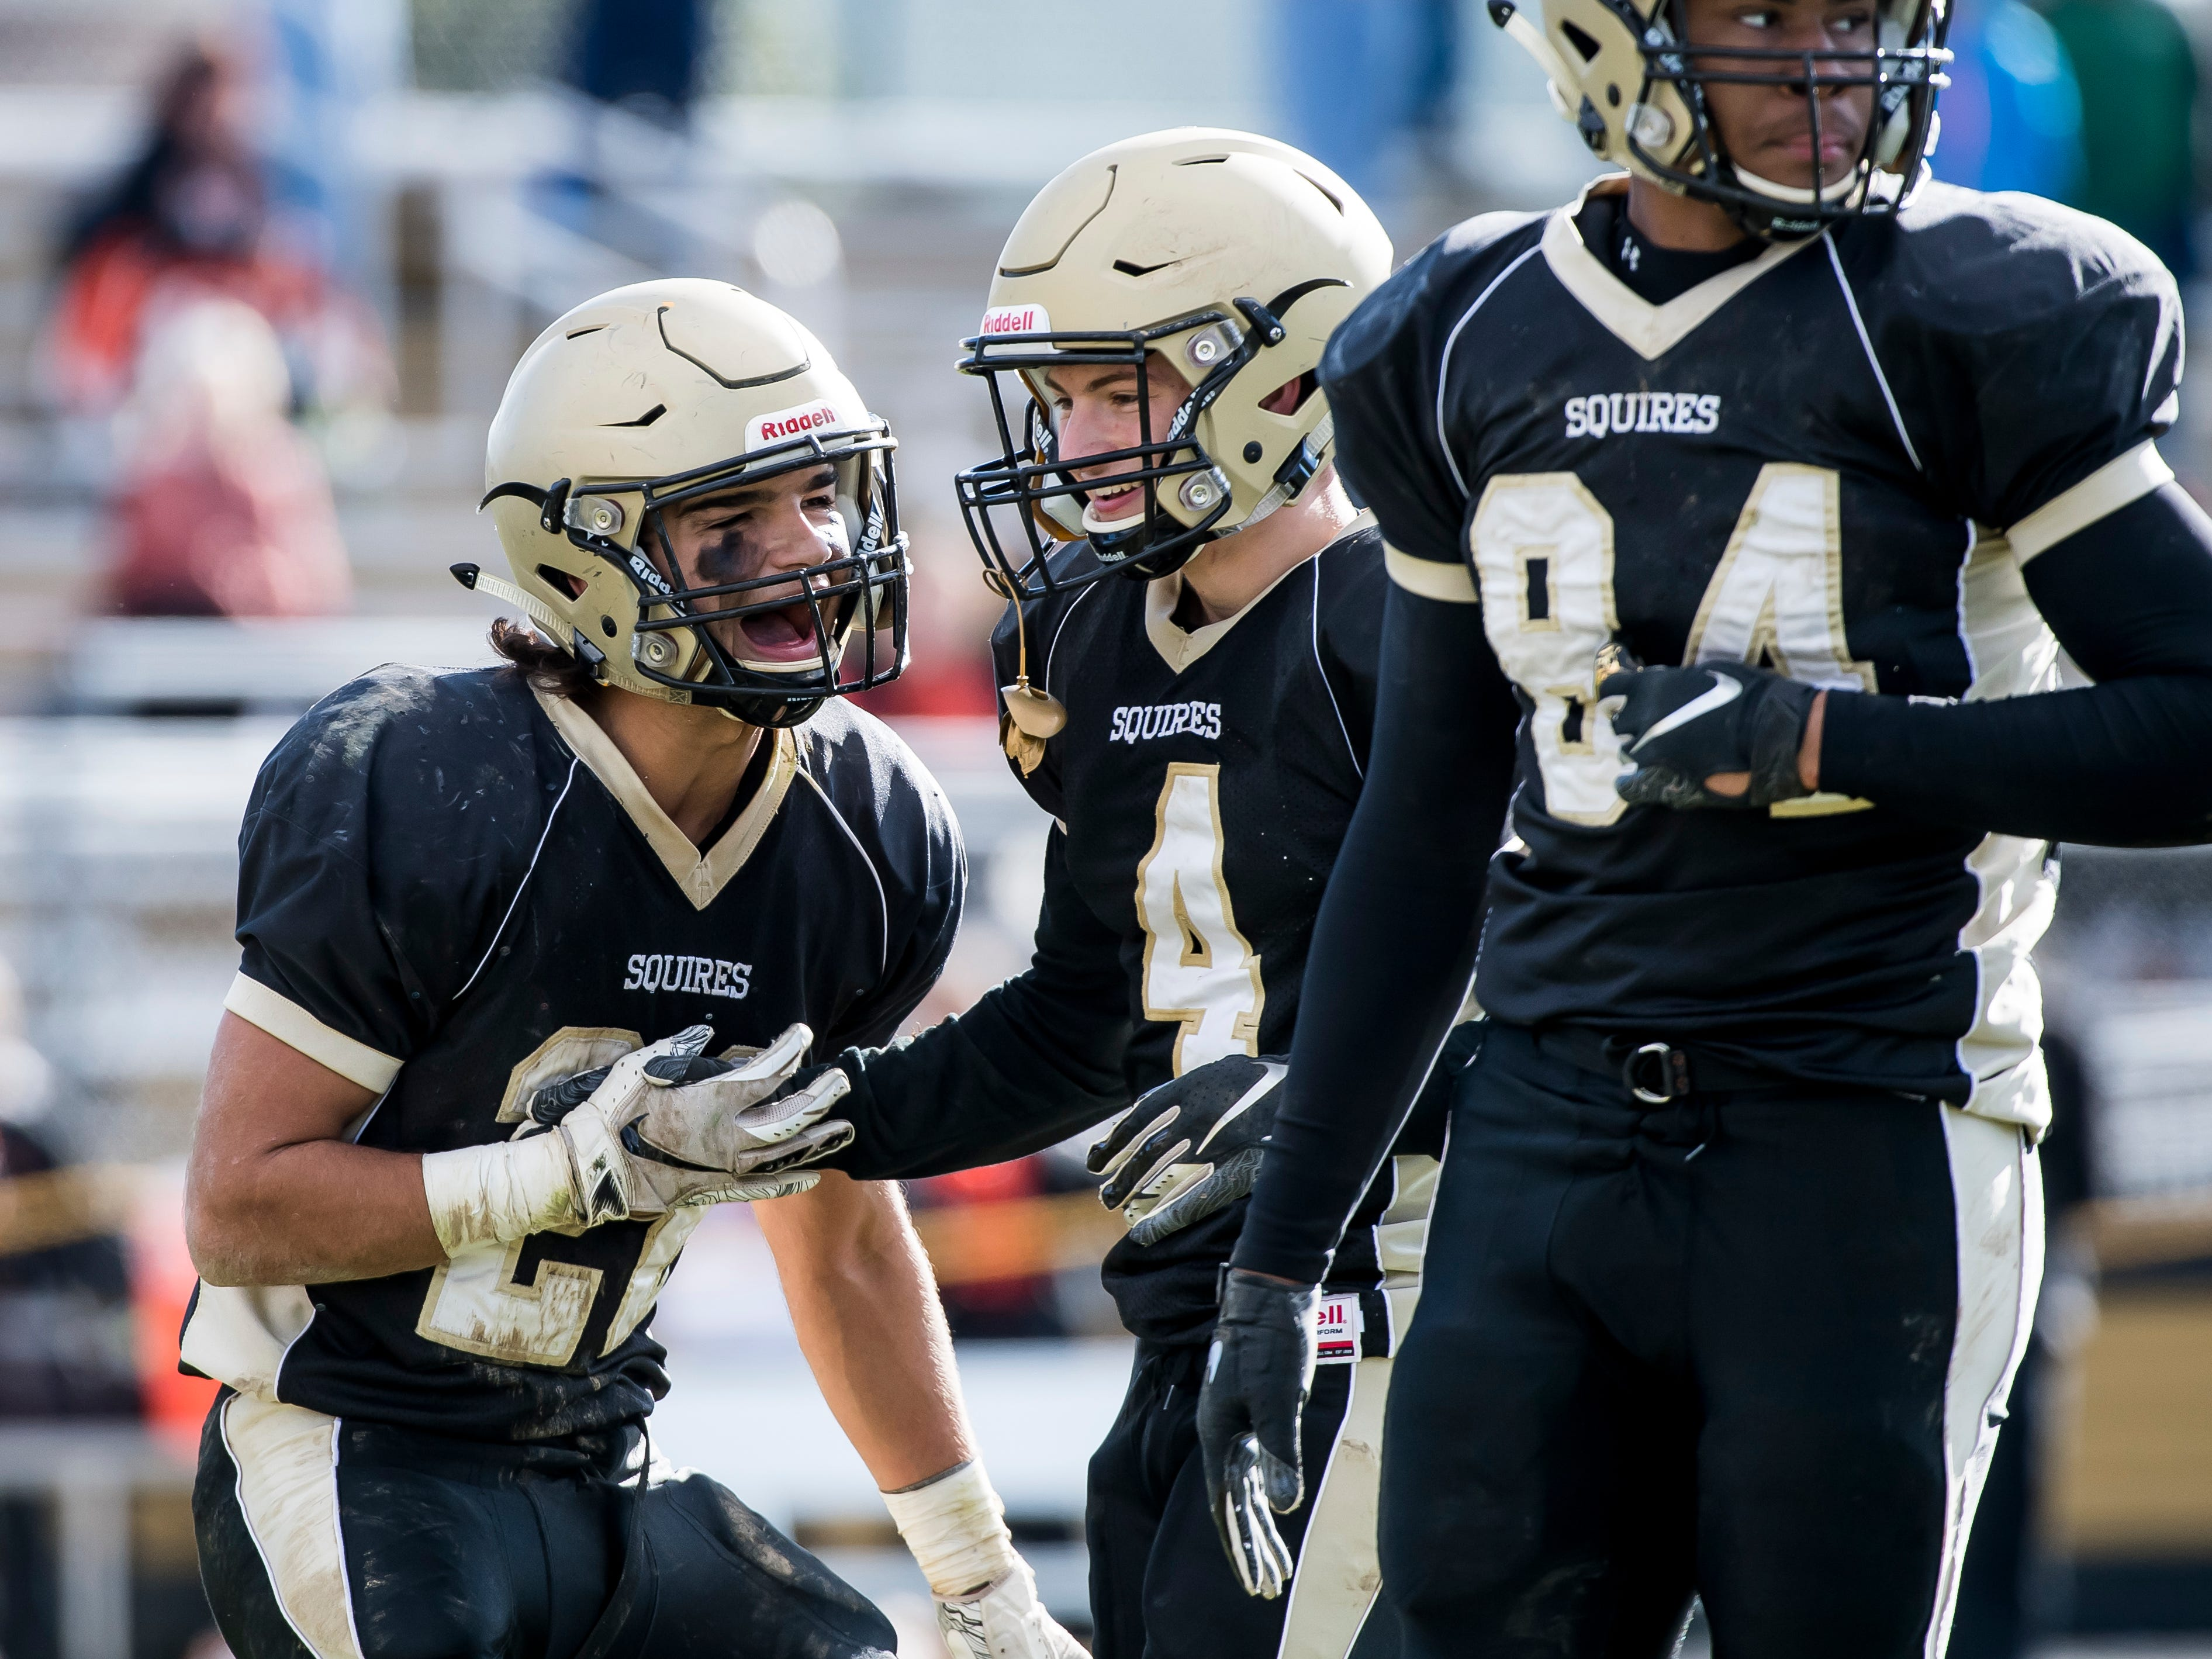 Delone Catholic's Joe Hernandez (left) pumps up Colin Gebhart (4) after Gebhart delivered a big tackle during a District III Class 2A semifinal game against Upper Dauphin on Saturday, November 3, 2018. The Squires won 48-23.